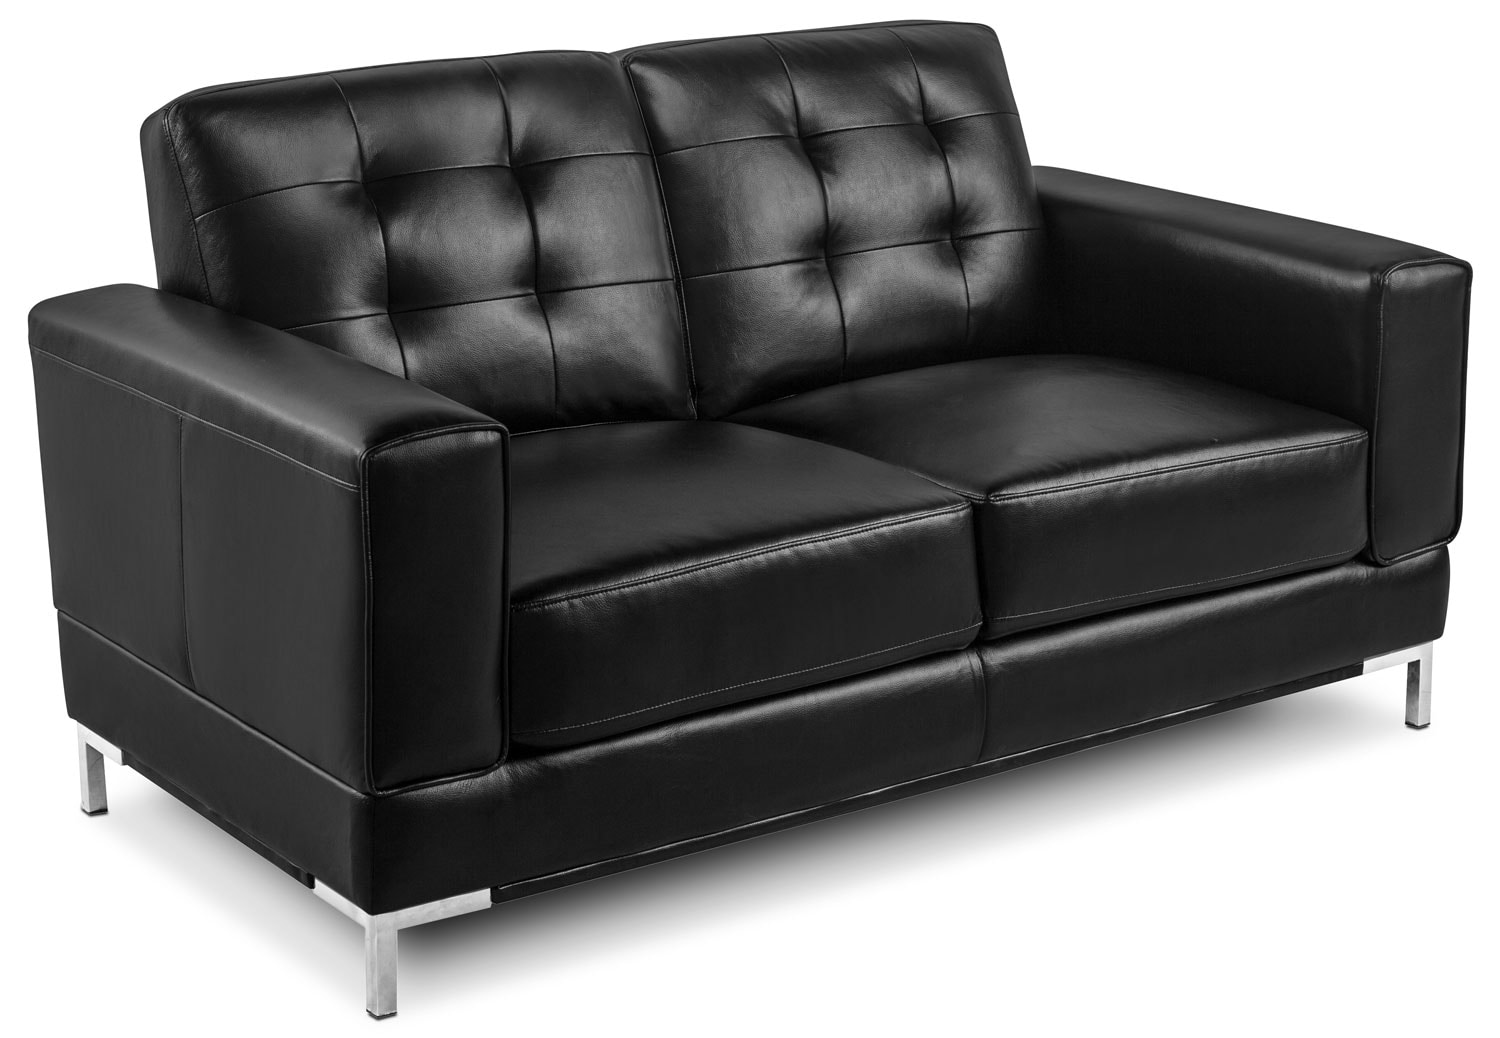 Myer Leather-Look Fabric Loveseat - Black